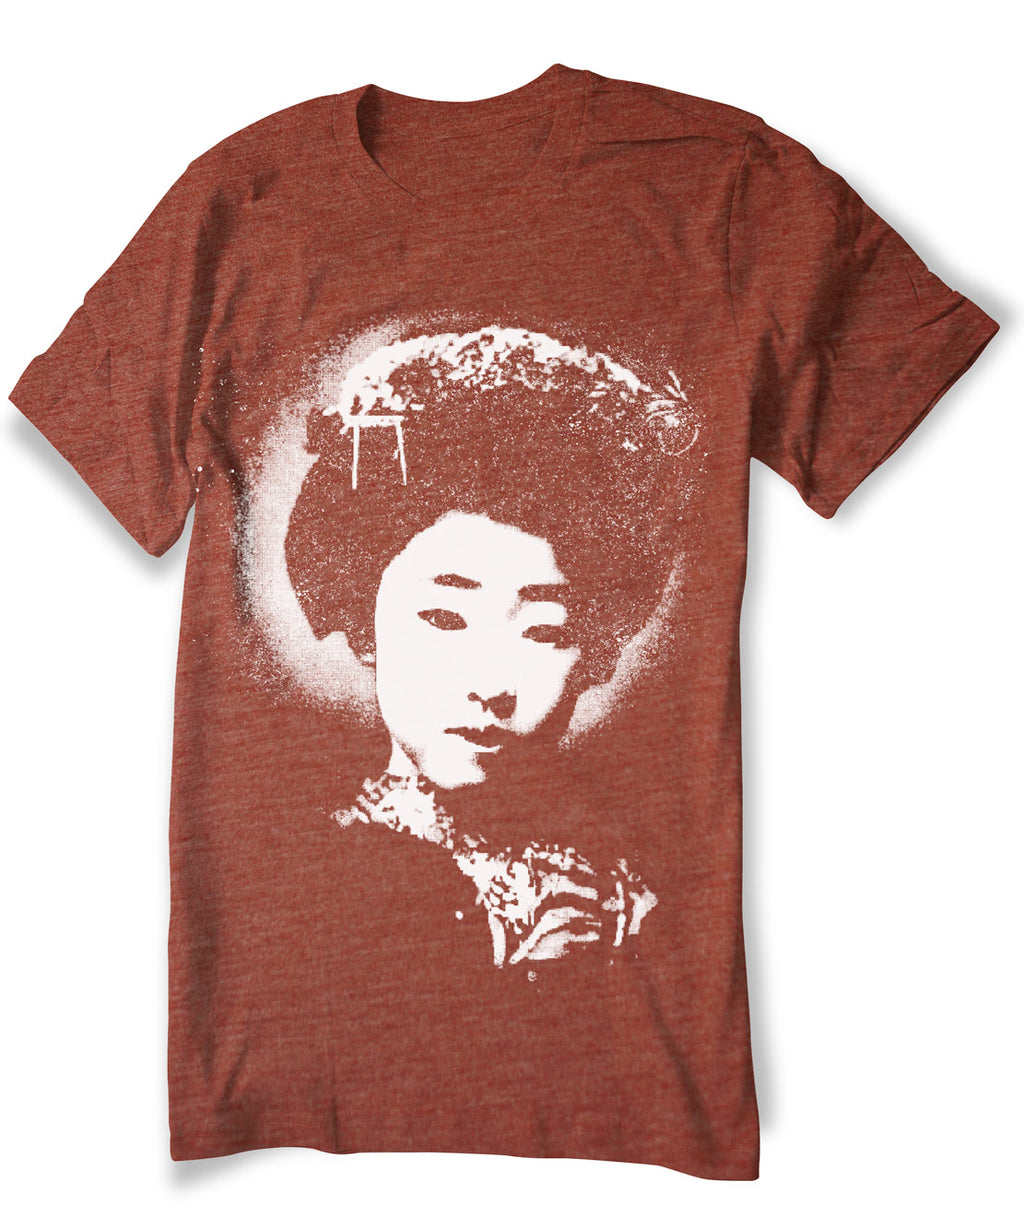 Japan Little Geisha Shirt